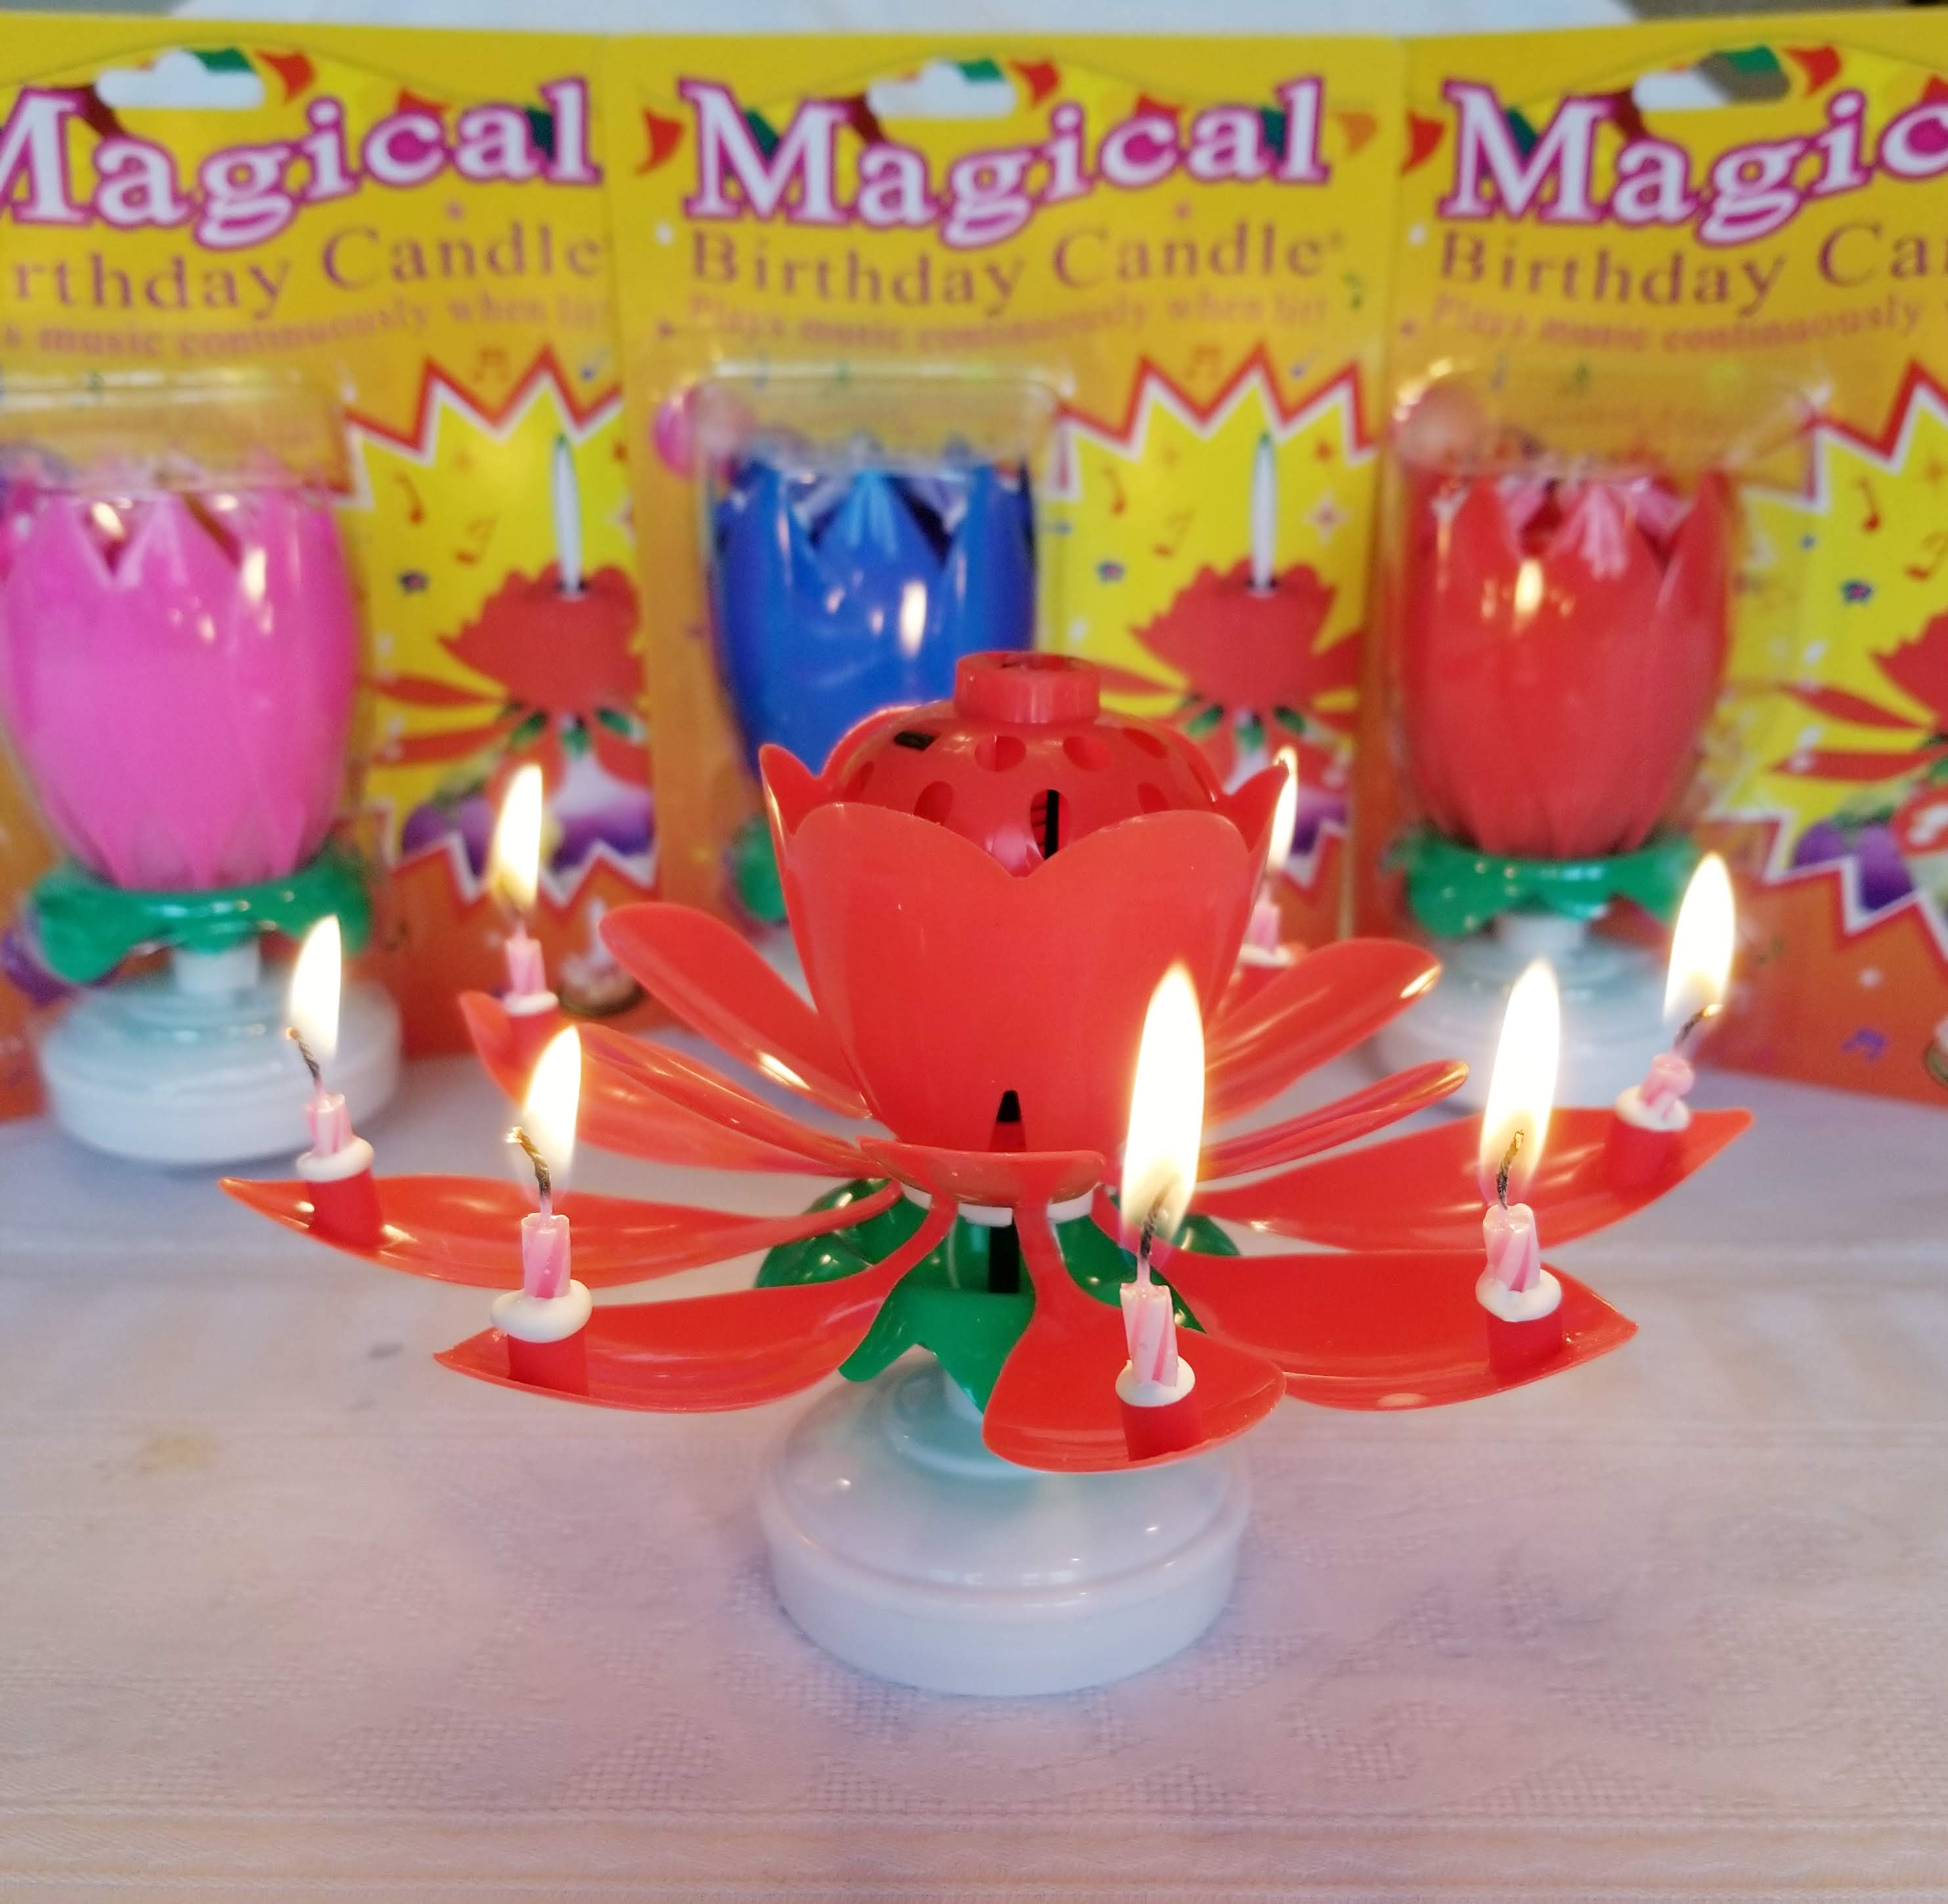 Magical Birthday Candle 1 Pack Shipping Discount Fast Shipping